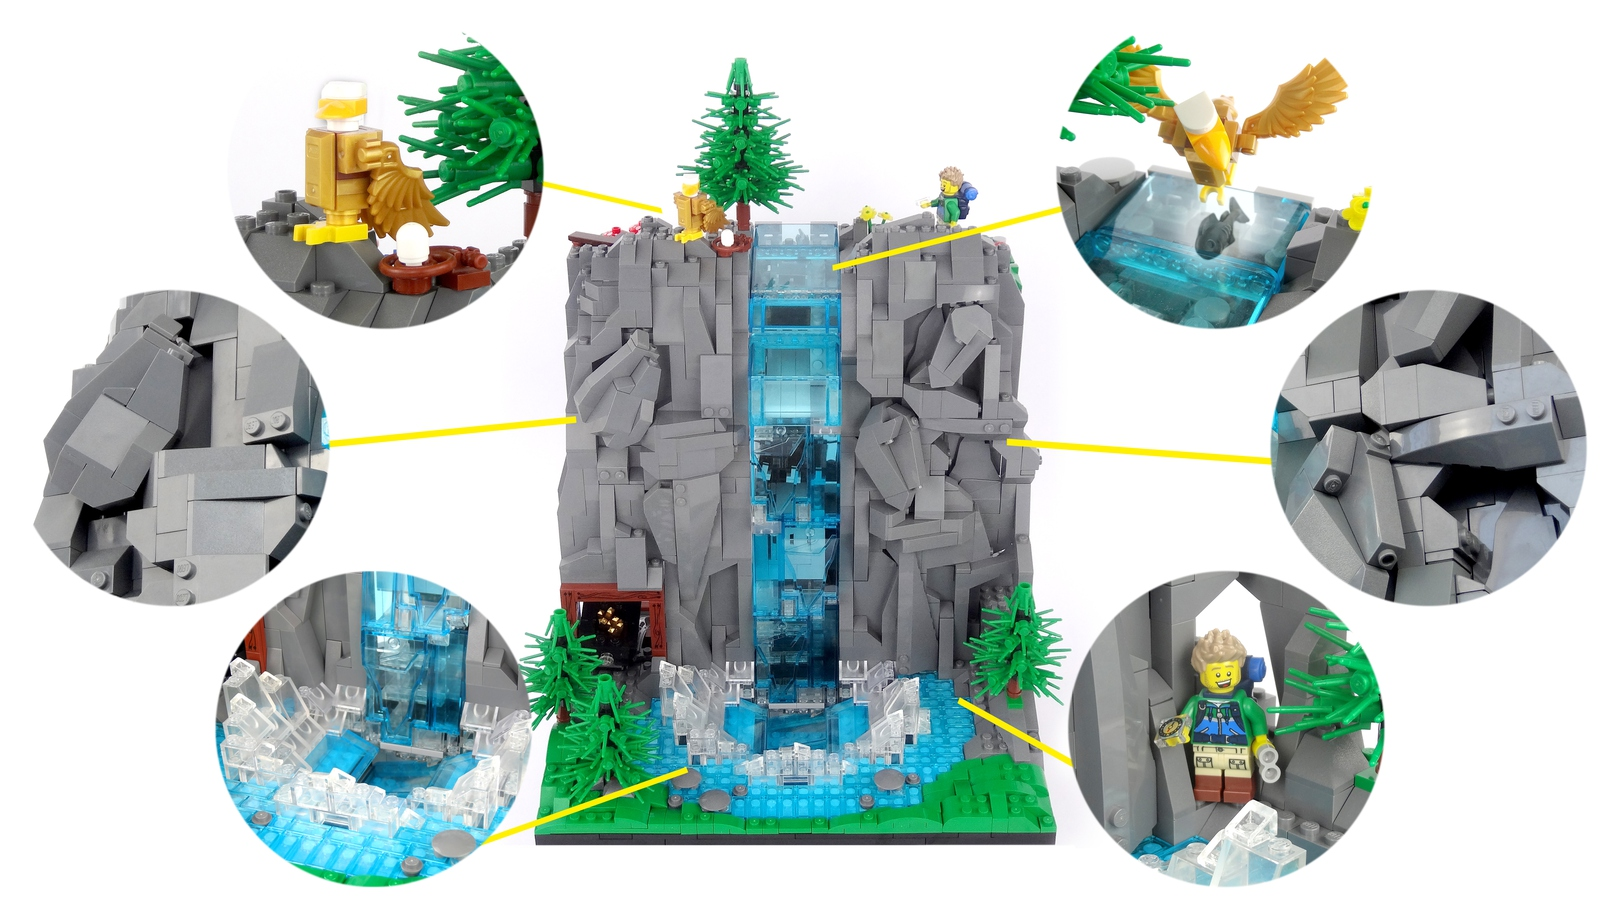 lego-ideas-working-waterfall-with-continuous-flowing-water-legoparadise-3 zusammengebaut.com